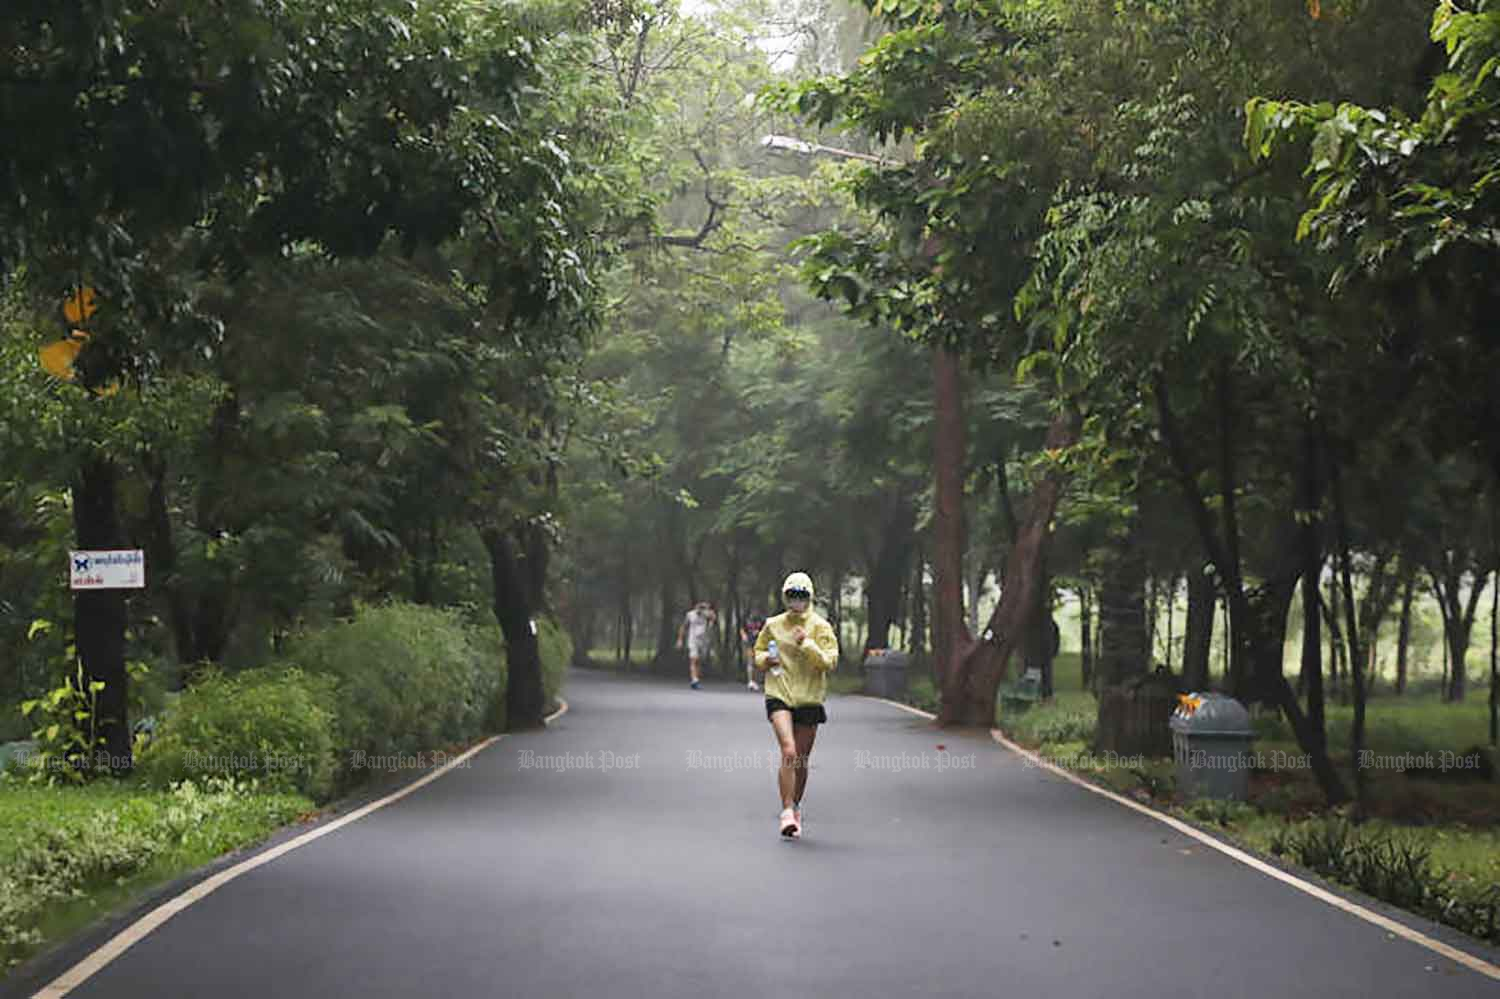 Joggers exercise on Wednesday at Vachirabenjatas Park or Suan Rot Fai in Chatuchak district of Bangkok. The park has welcomed back visitors and joggers now that some social restrictions have been eased. (Photo: Arnun Chonmahatrakool)